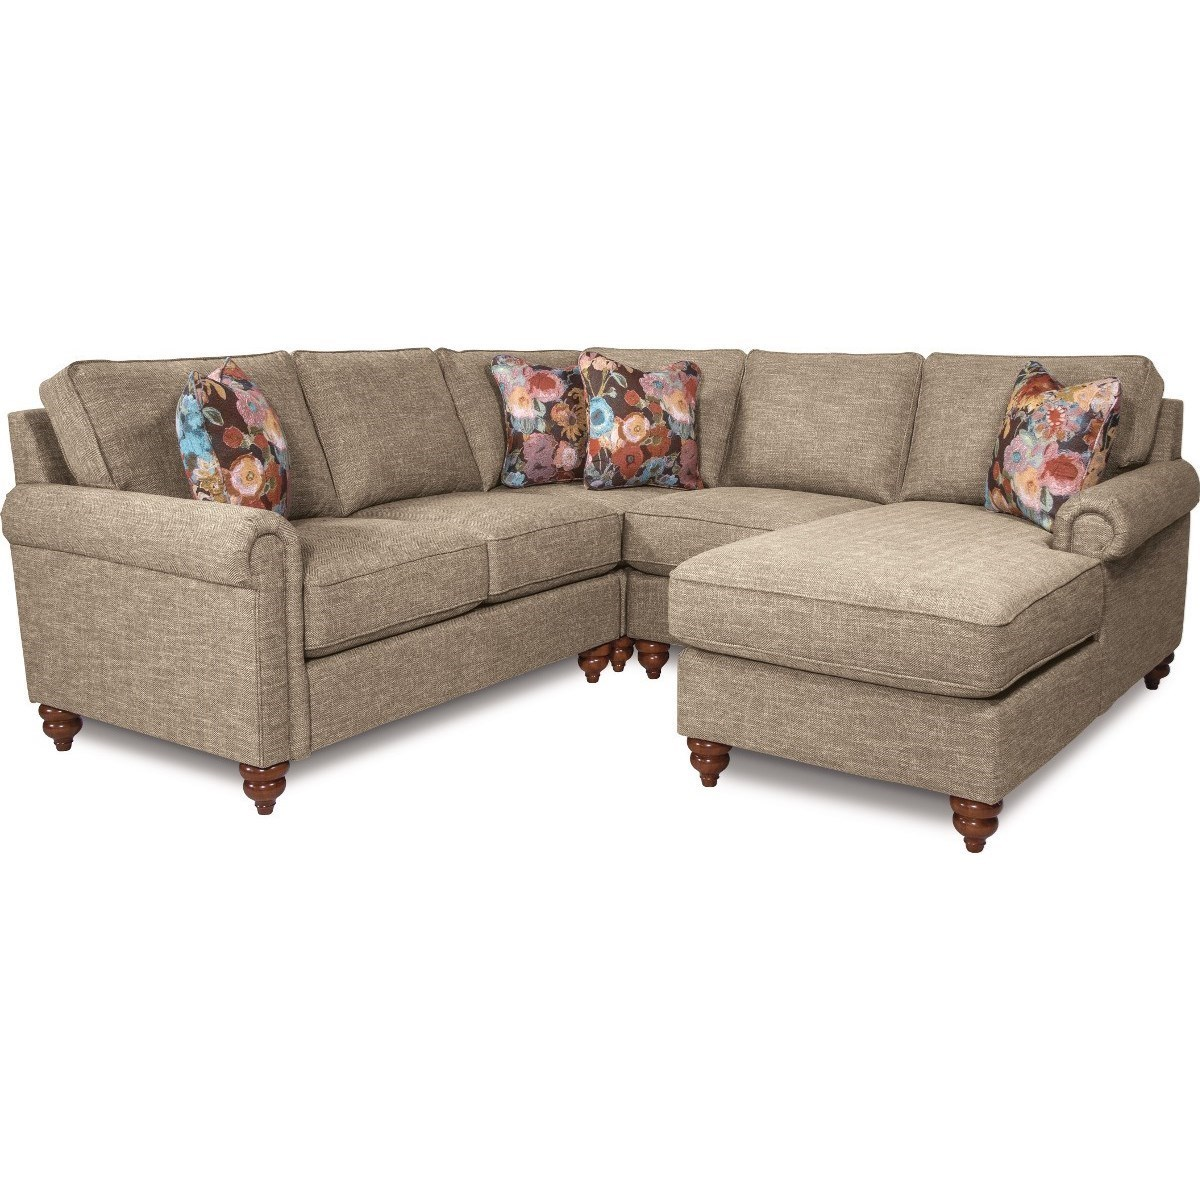 leighton traditional four piece sectional sofa with left arm sitting chaise by la z boy